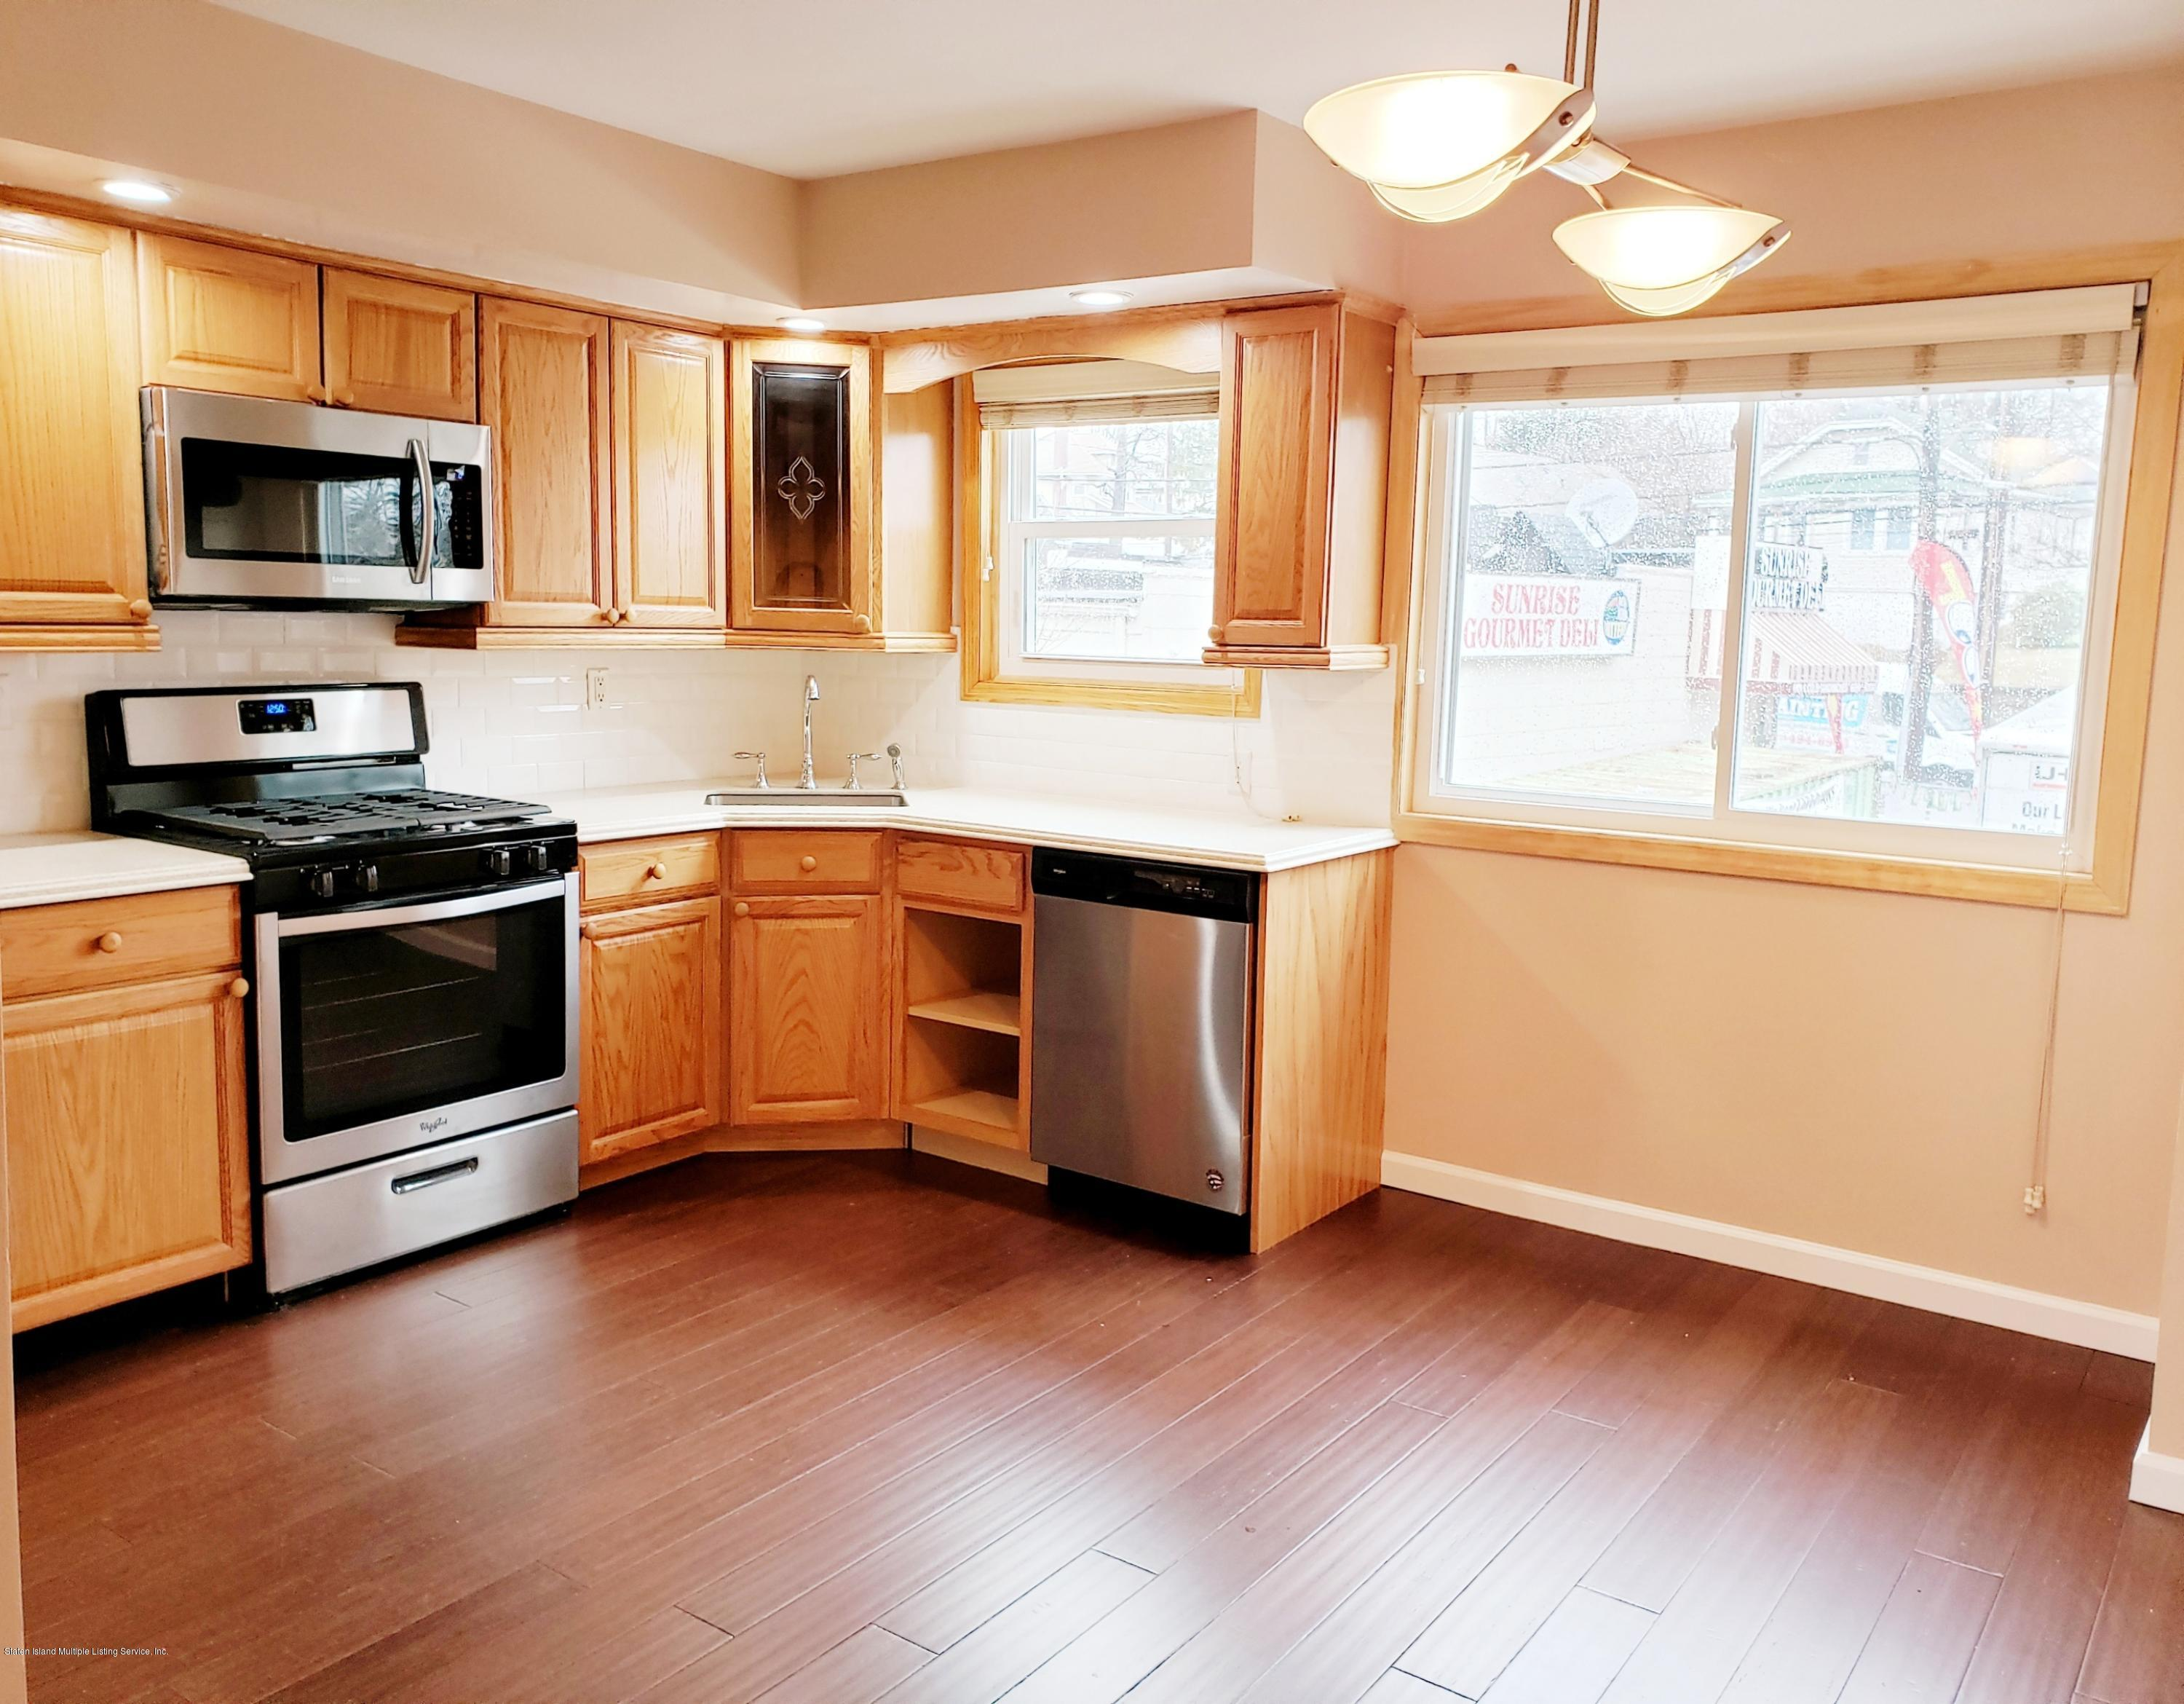 Single Family - Attached 31 Gail Court  Staten Island, NY 10306, MLS-1127035-5